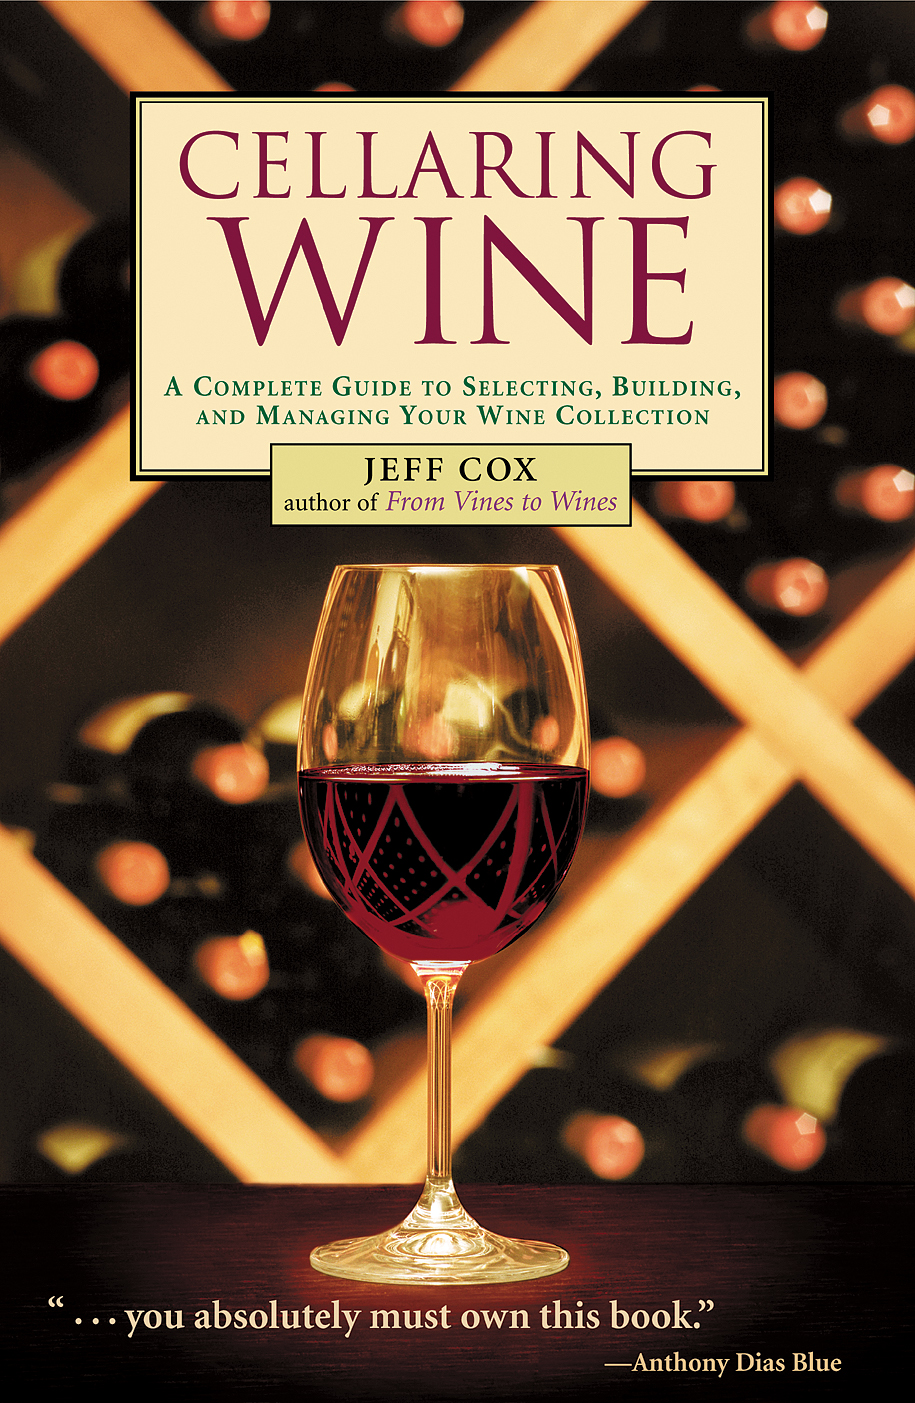 Cellaring Wine A Complete Guide to Selecting, Building, and Managing Your Wine Collection - Jeff Cox